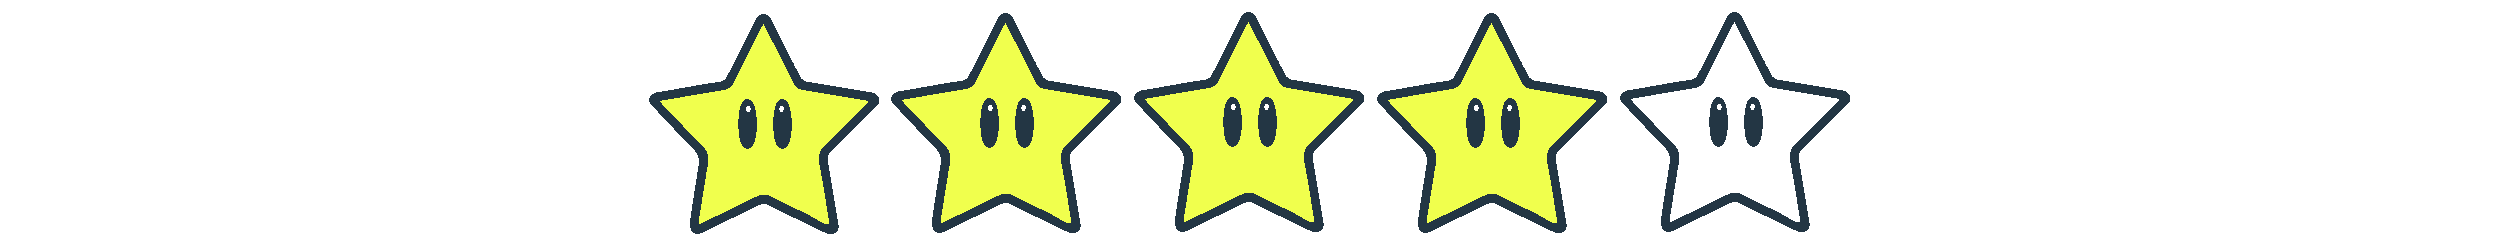 4+Stars.png